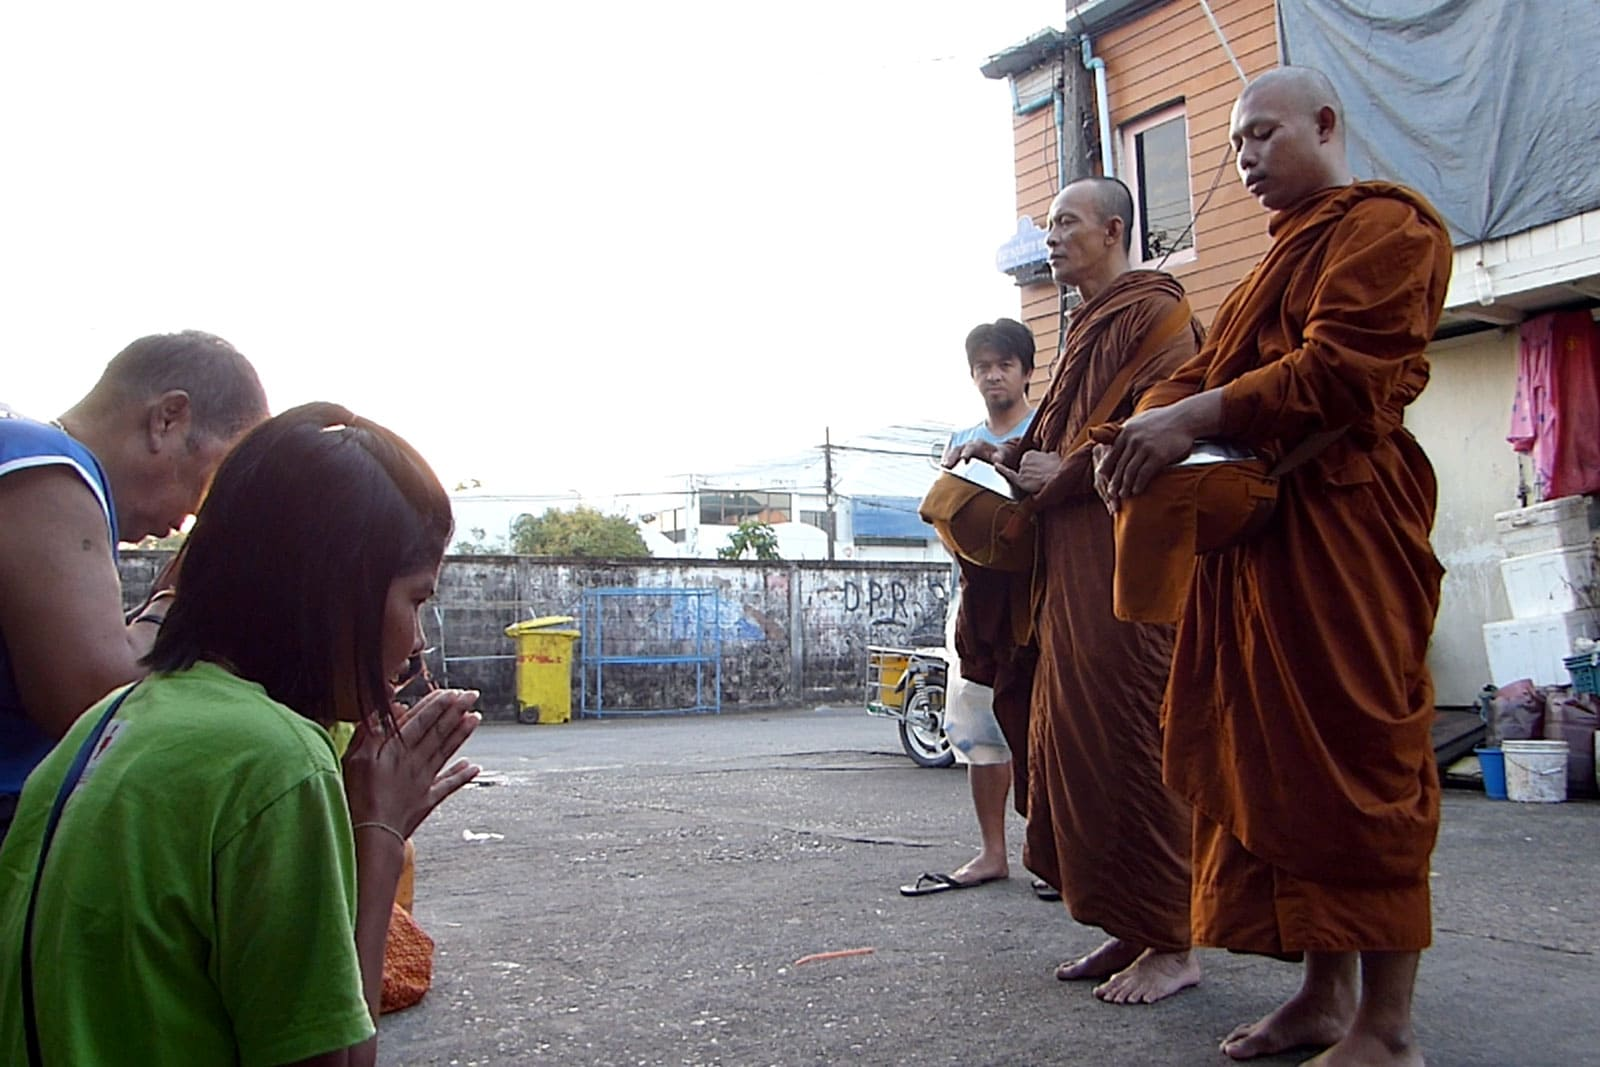 Ben's first day as a Buddhist monk